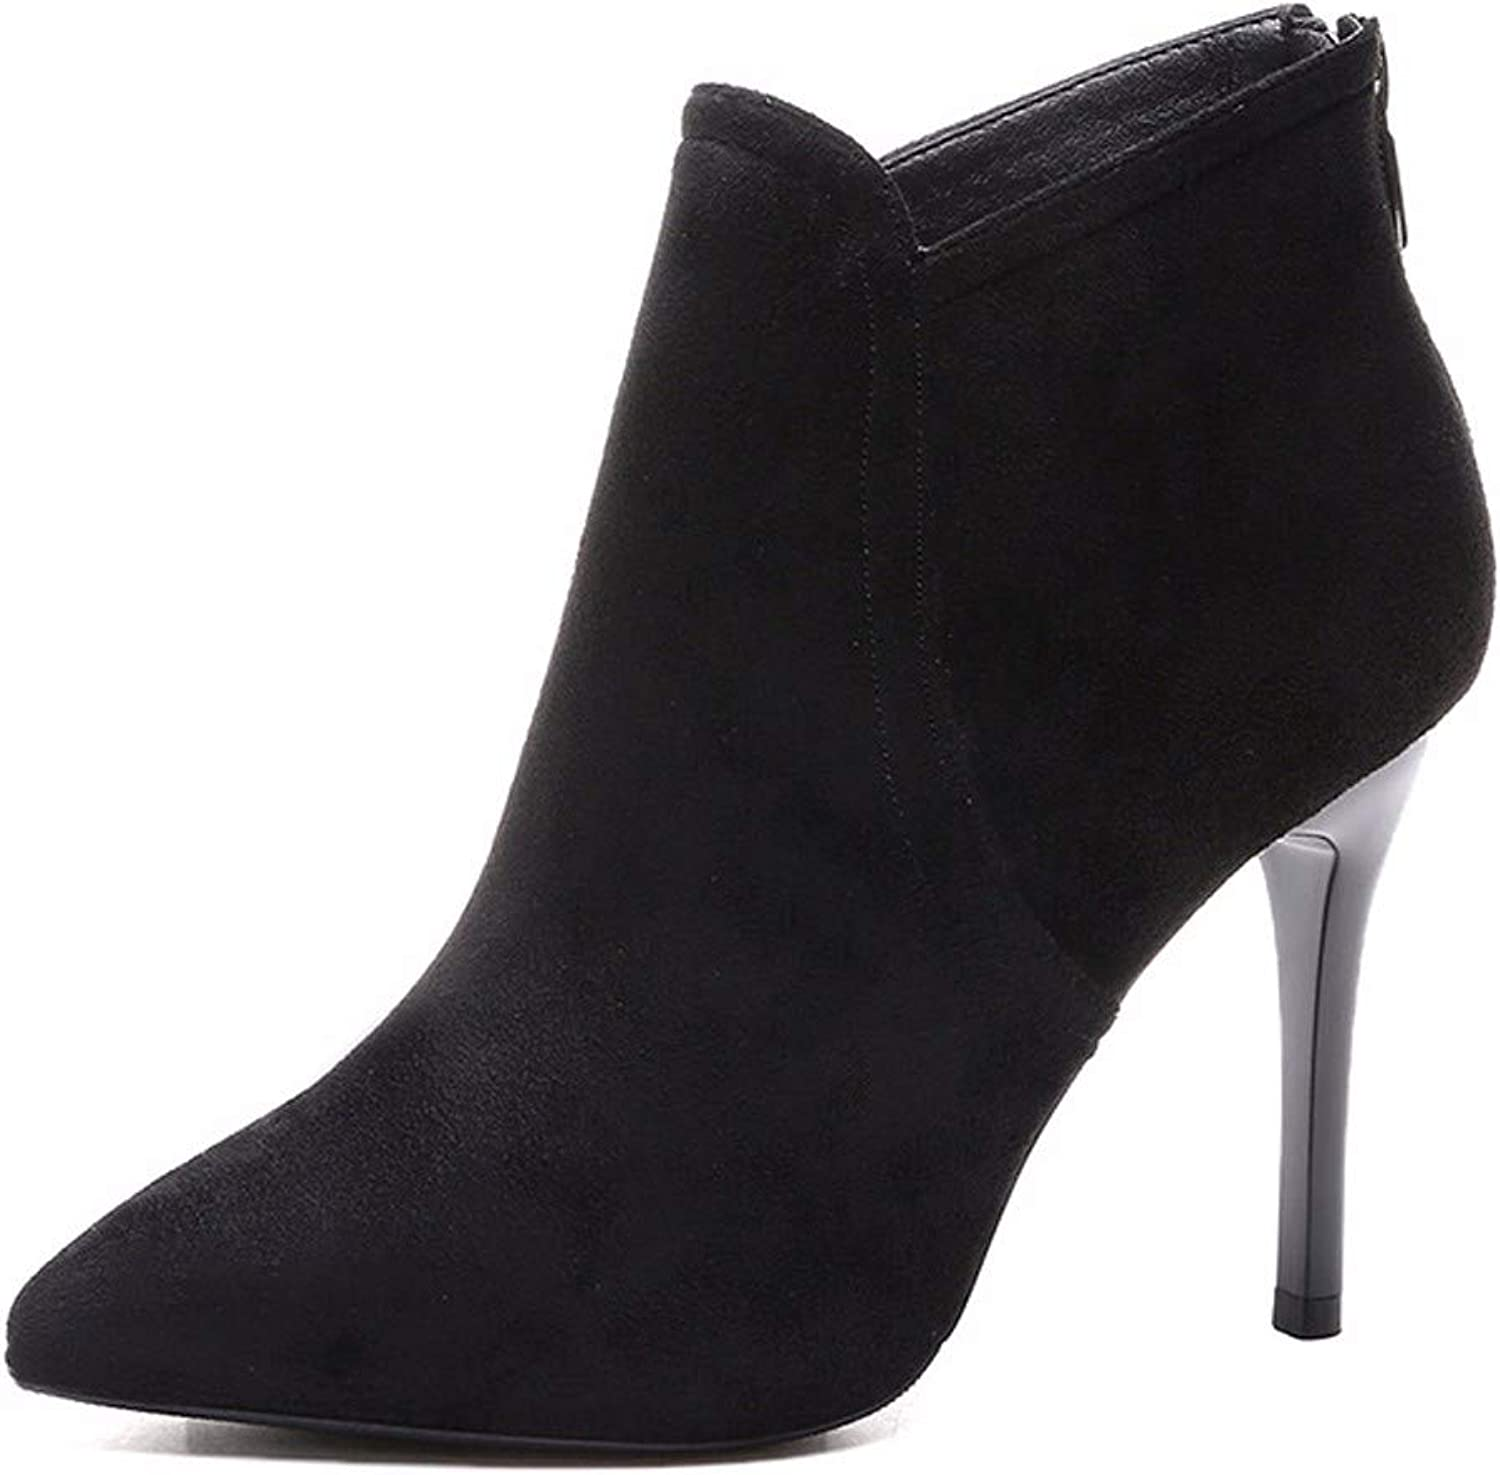 SFSYDDY Popular shoes Velvet Short Boots High 9Cm Black Frosted Wild Martin Boots Pointed Thin Heels and Bare Boots.